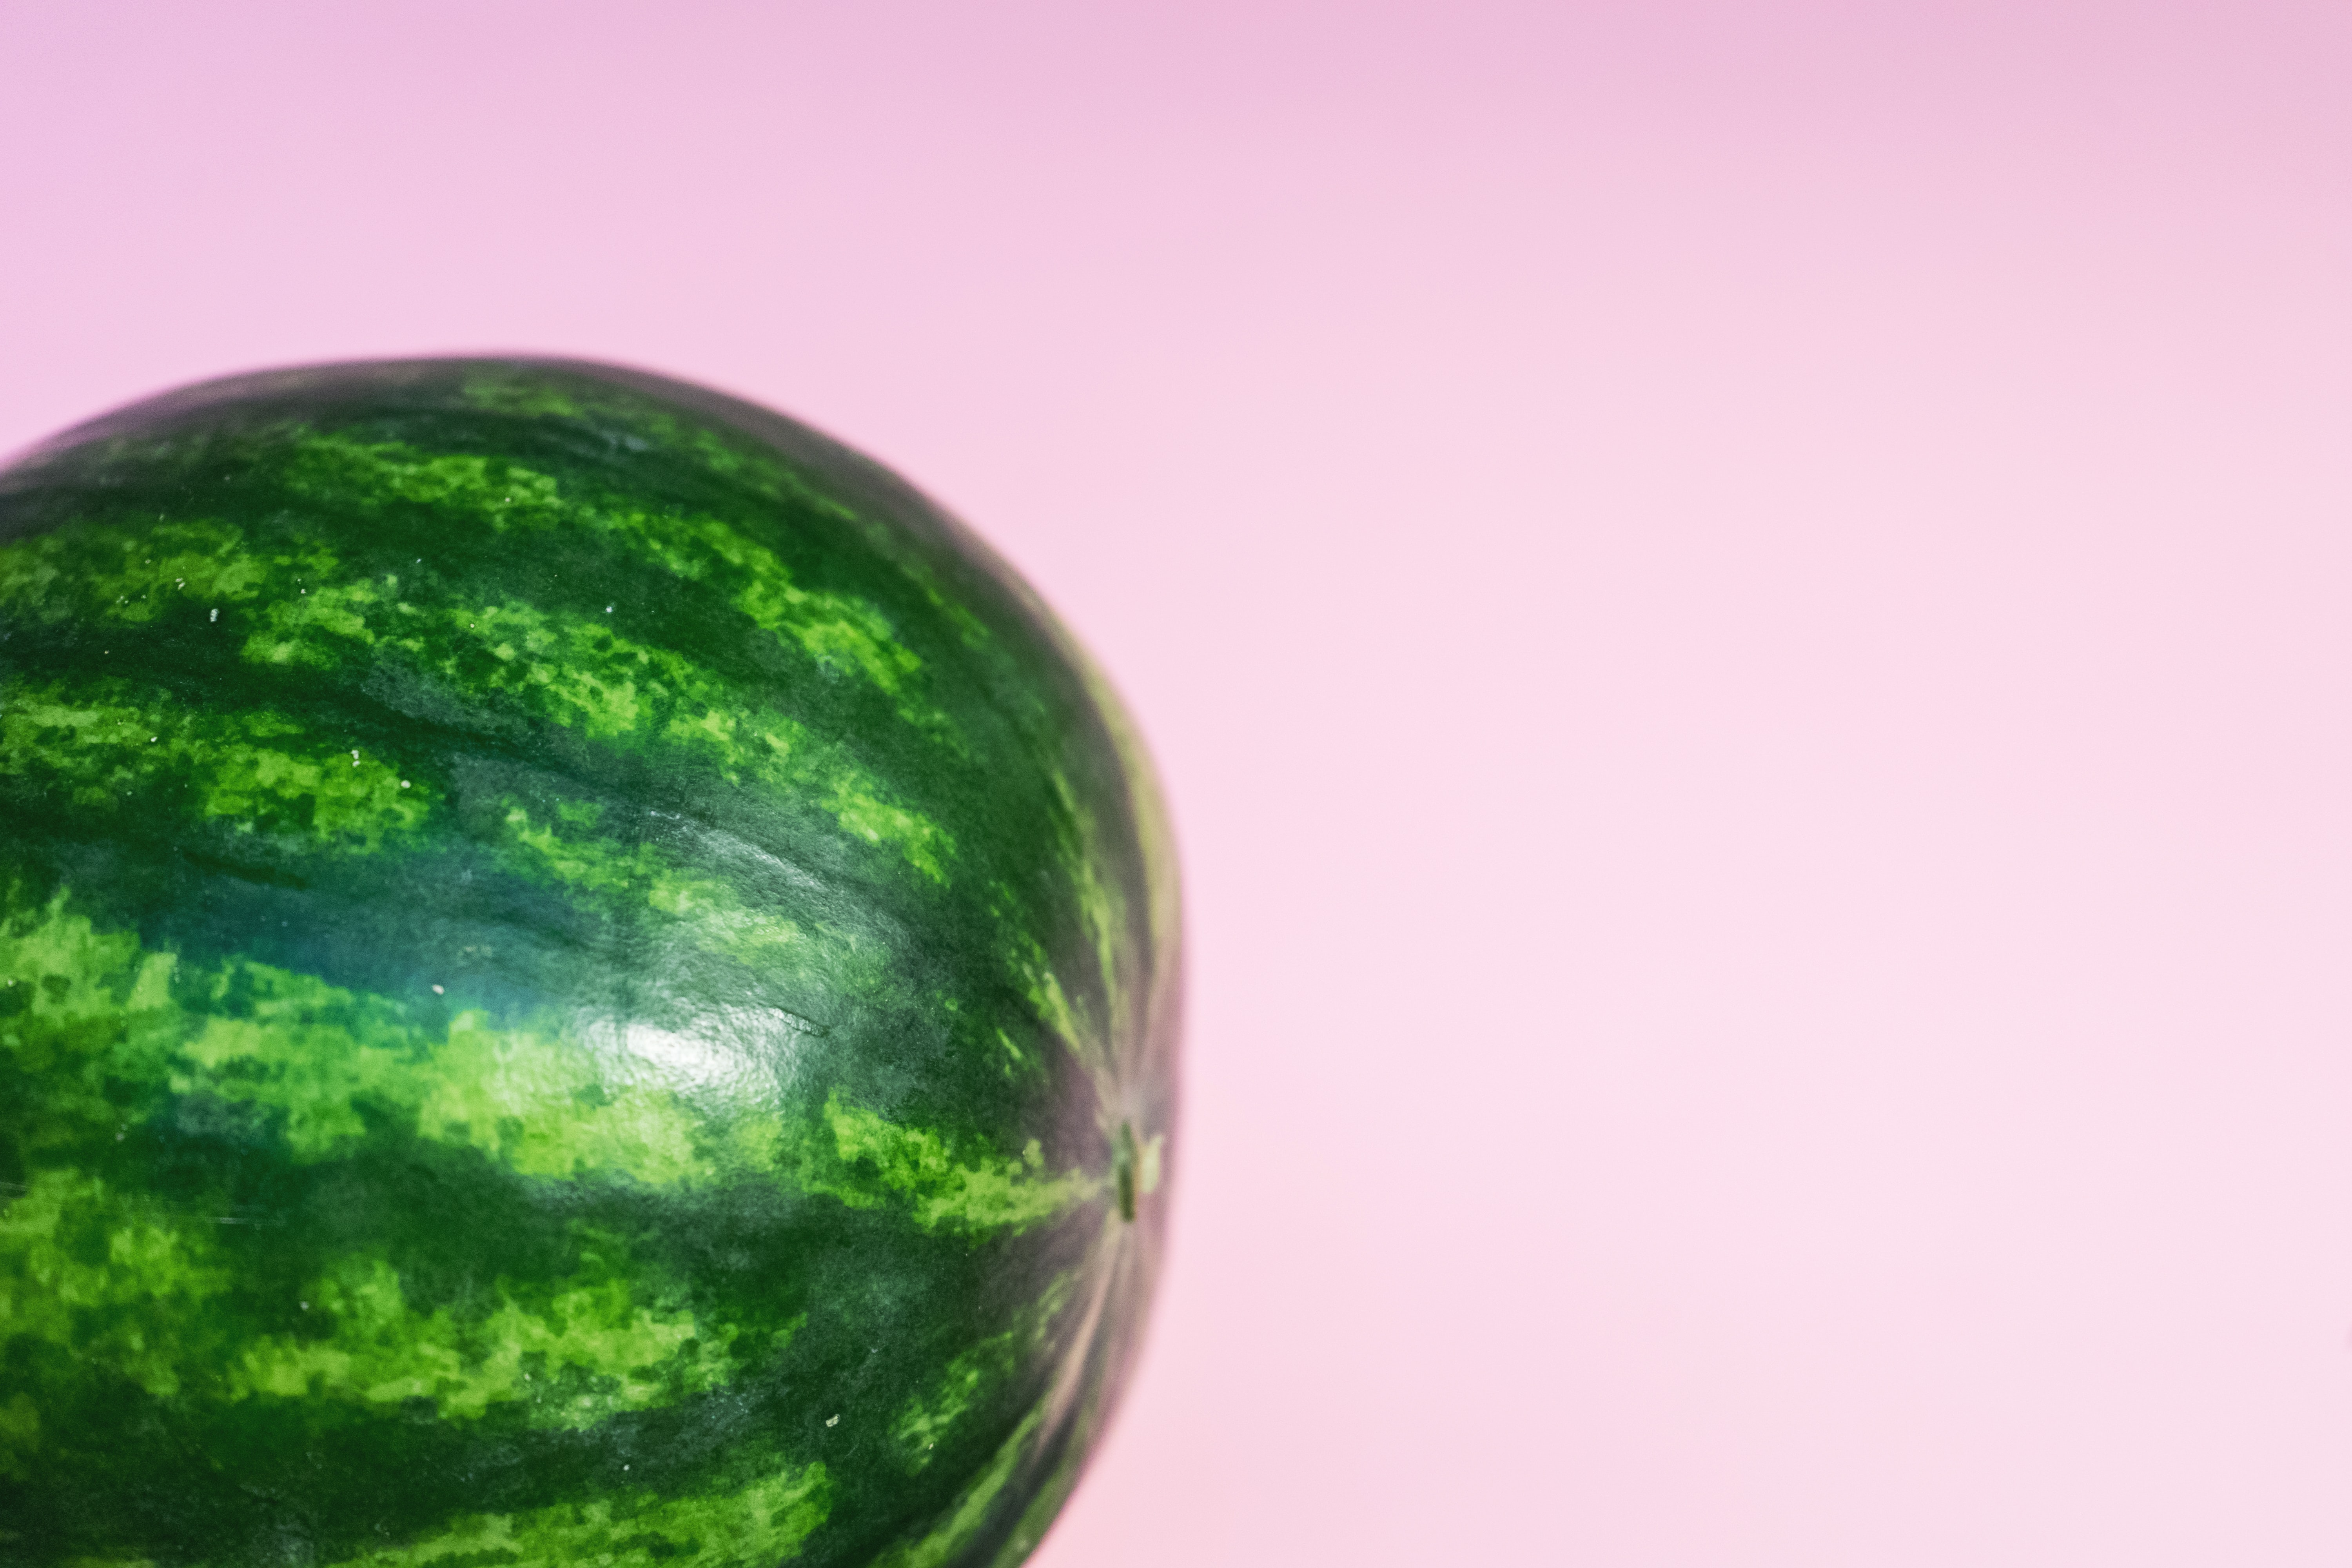 Free Unsplash photo from Watermelons